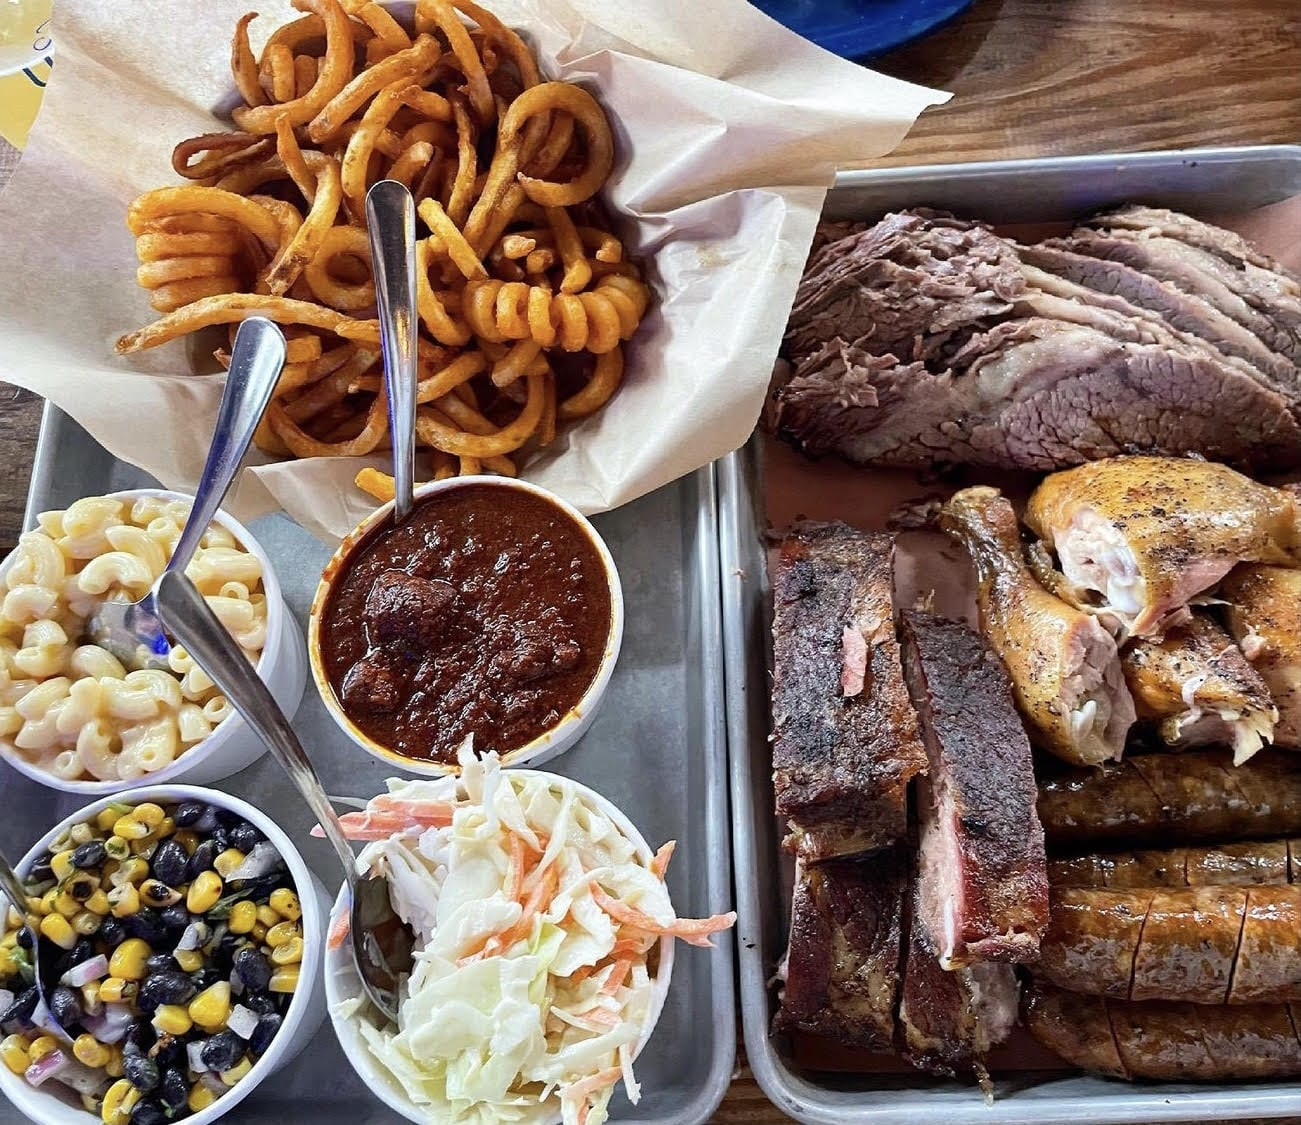 Combo platter with sides and curly fries from House of 'Que in Hoboken, NJ